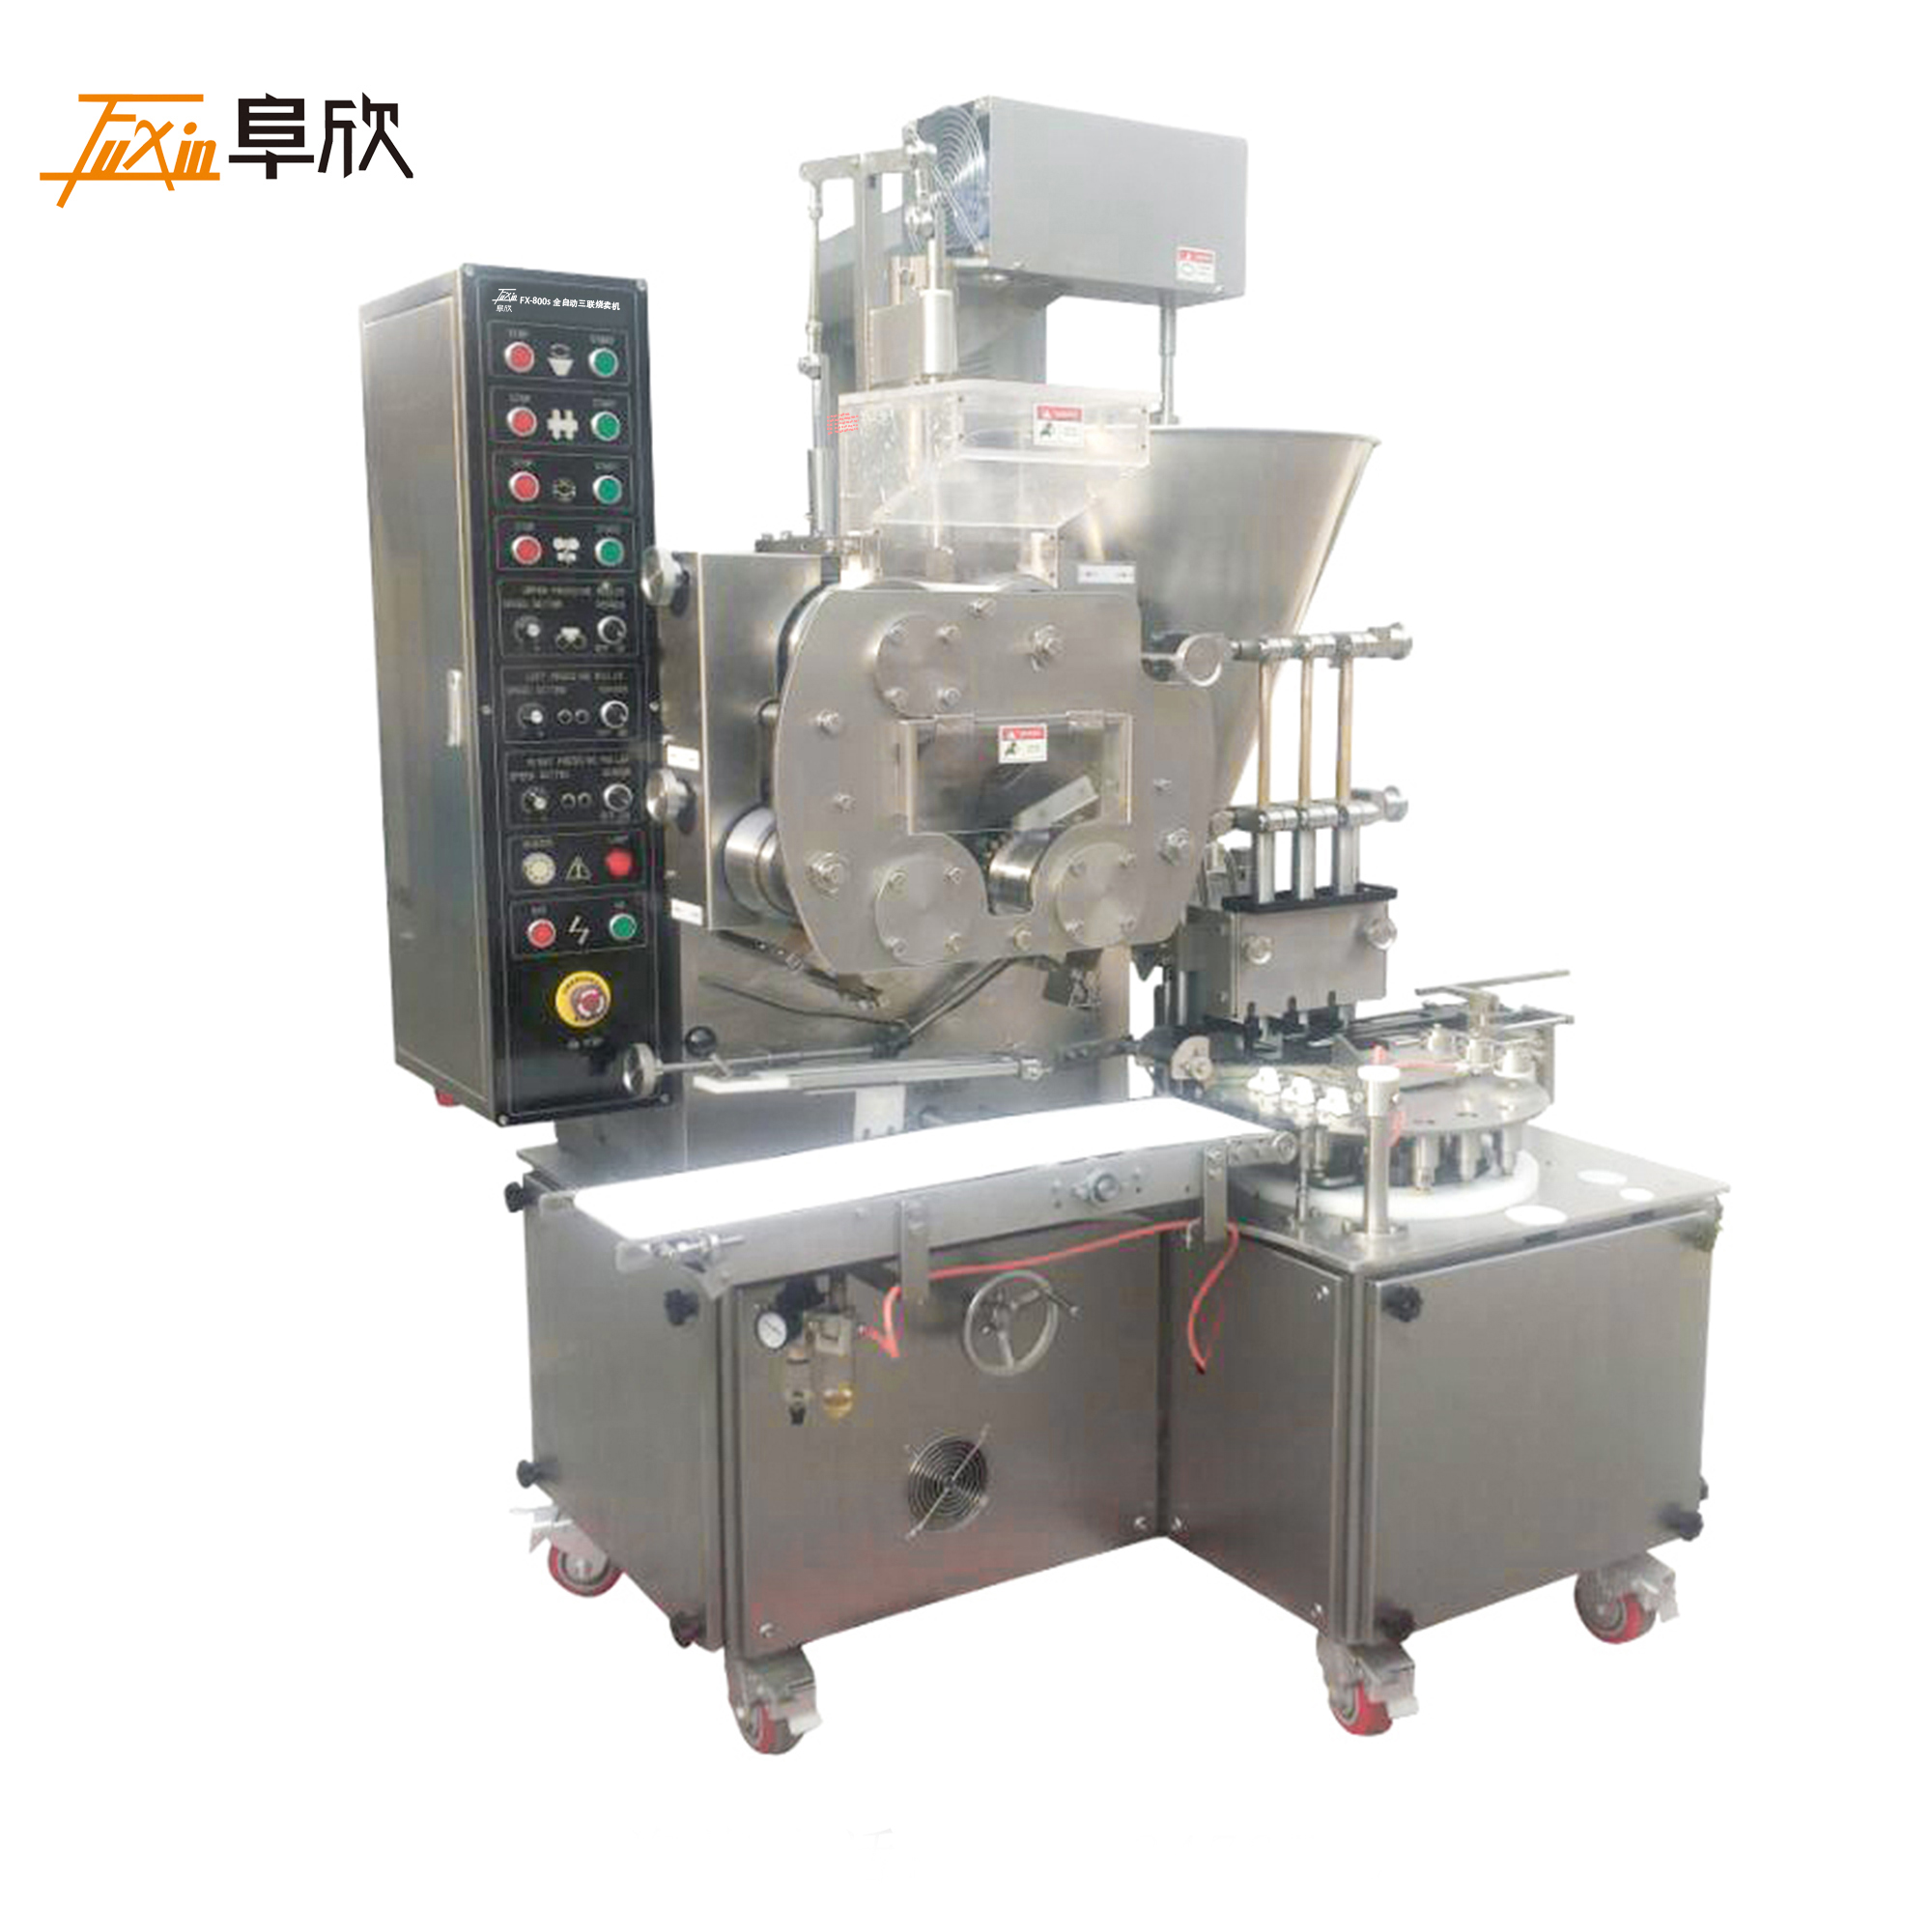 Automatic Triple Line Siomay/Siomai/Shumai Making Machine Featured Image